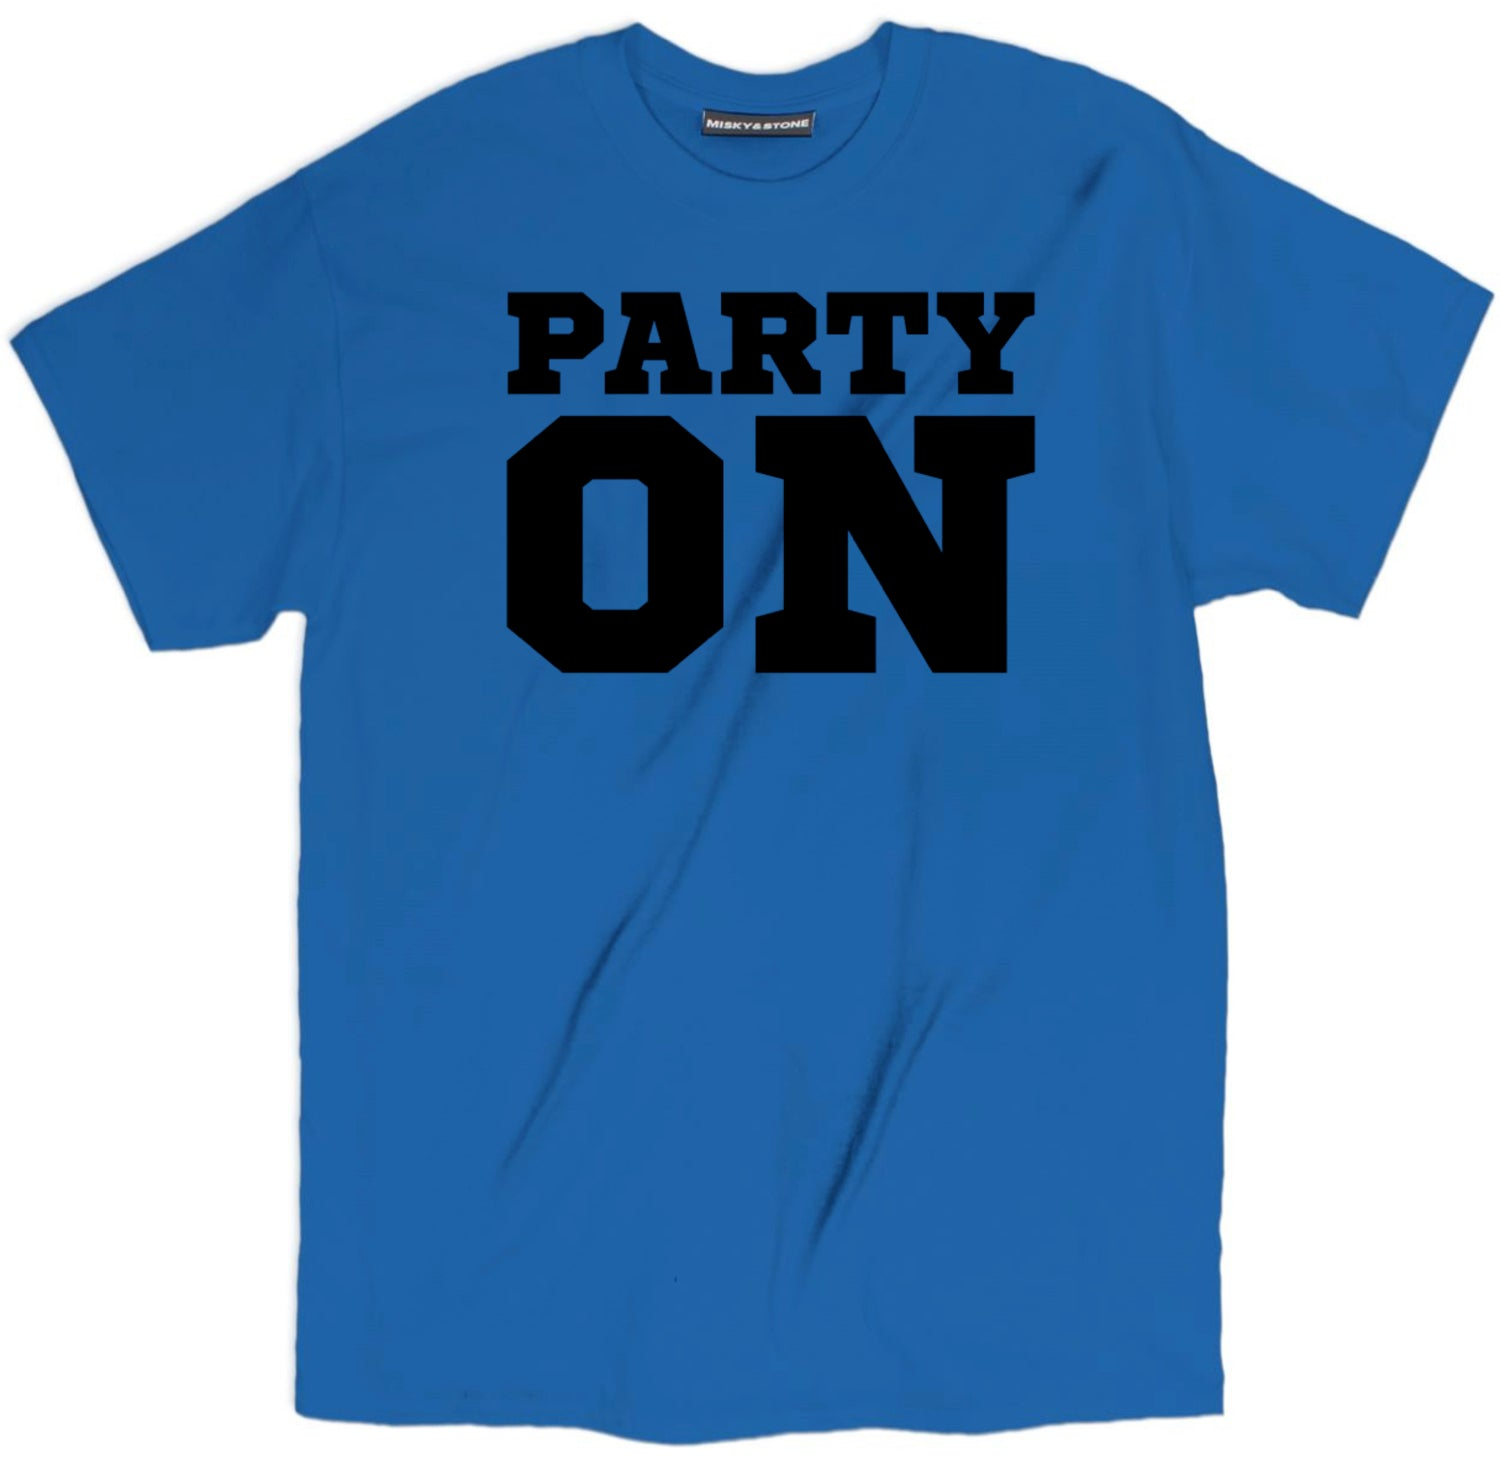 Party On Shirt